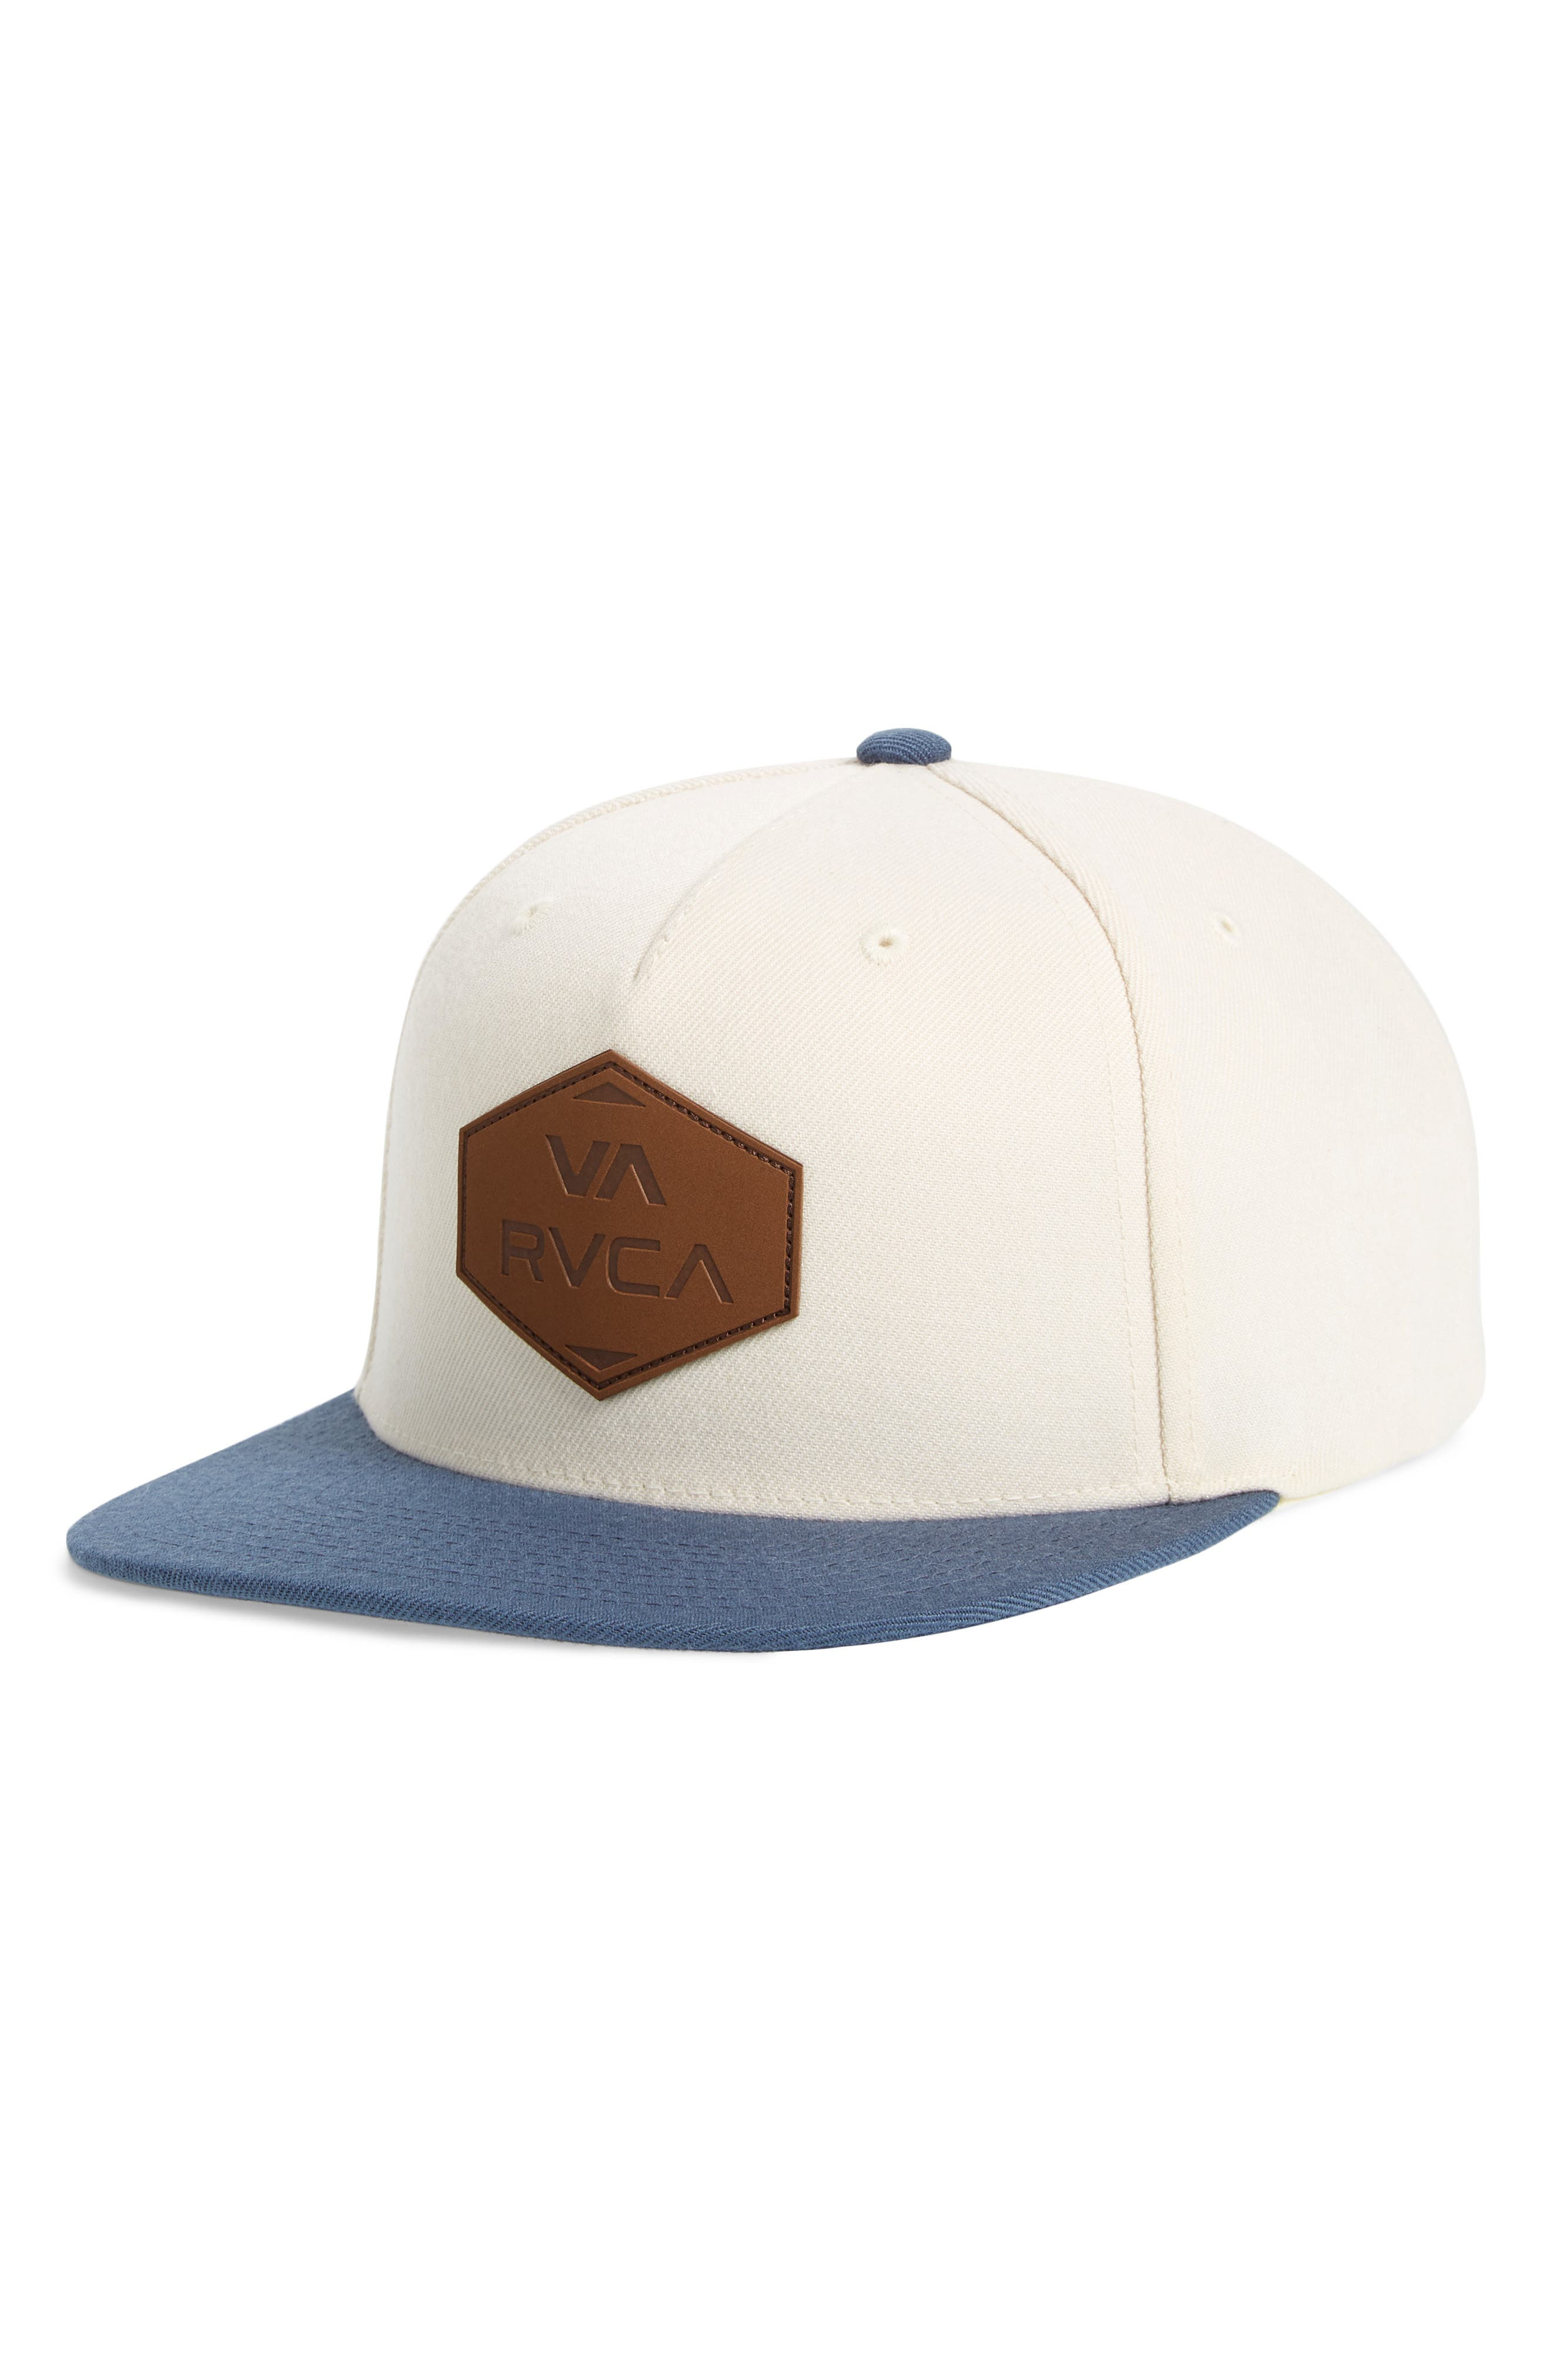 RVCA What Logo Patch Baseball Cap, Main, color, 100